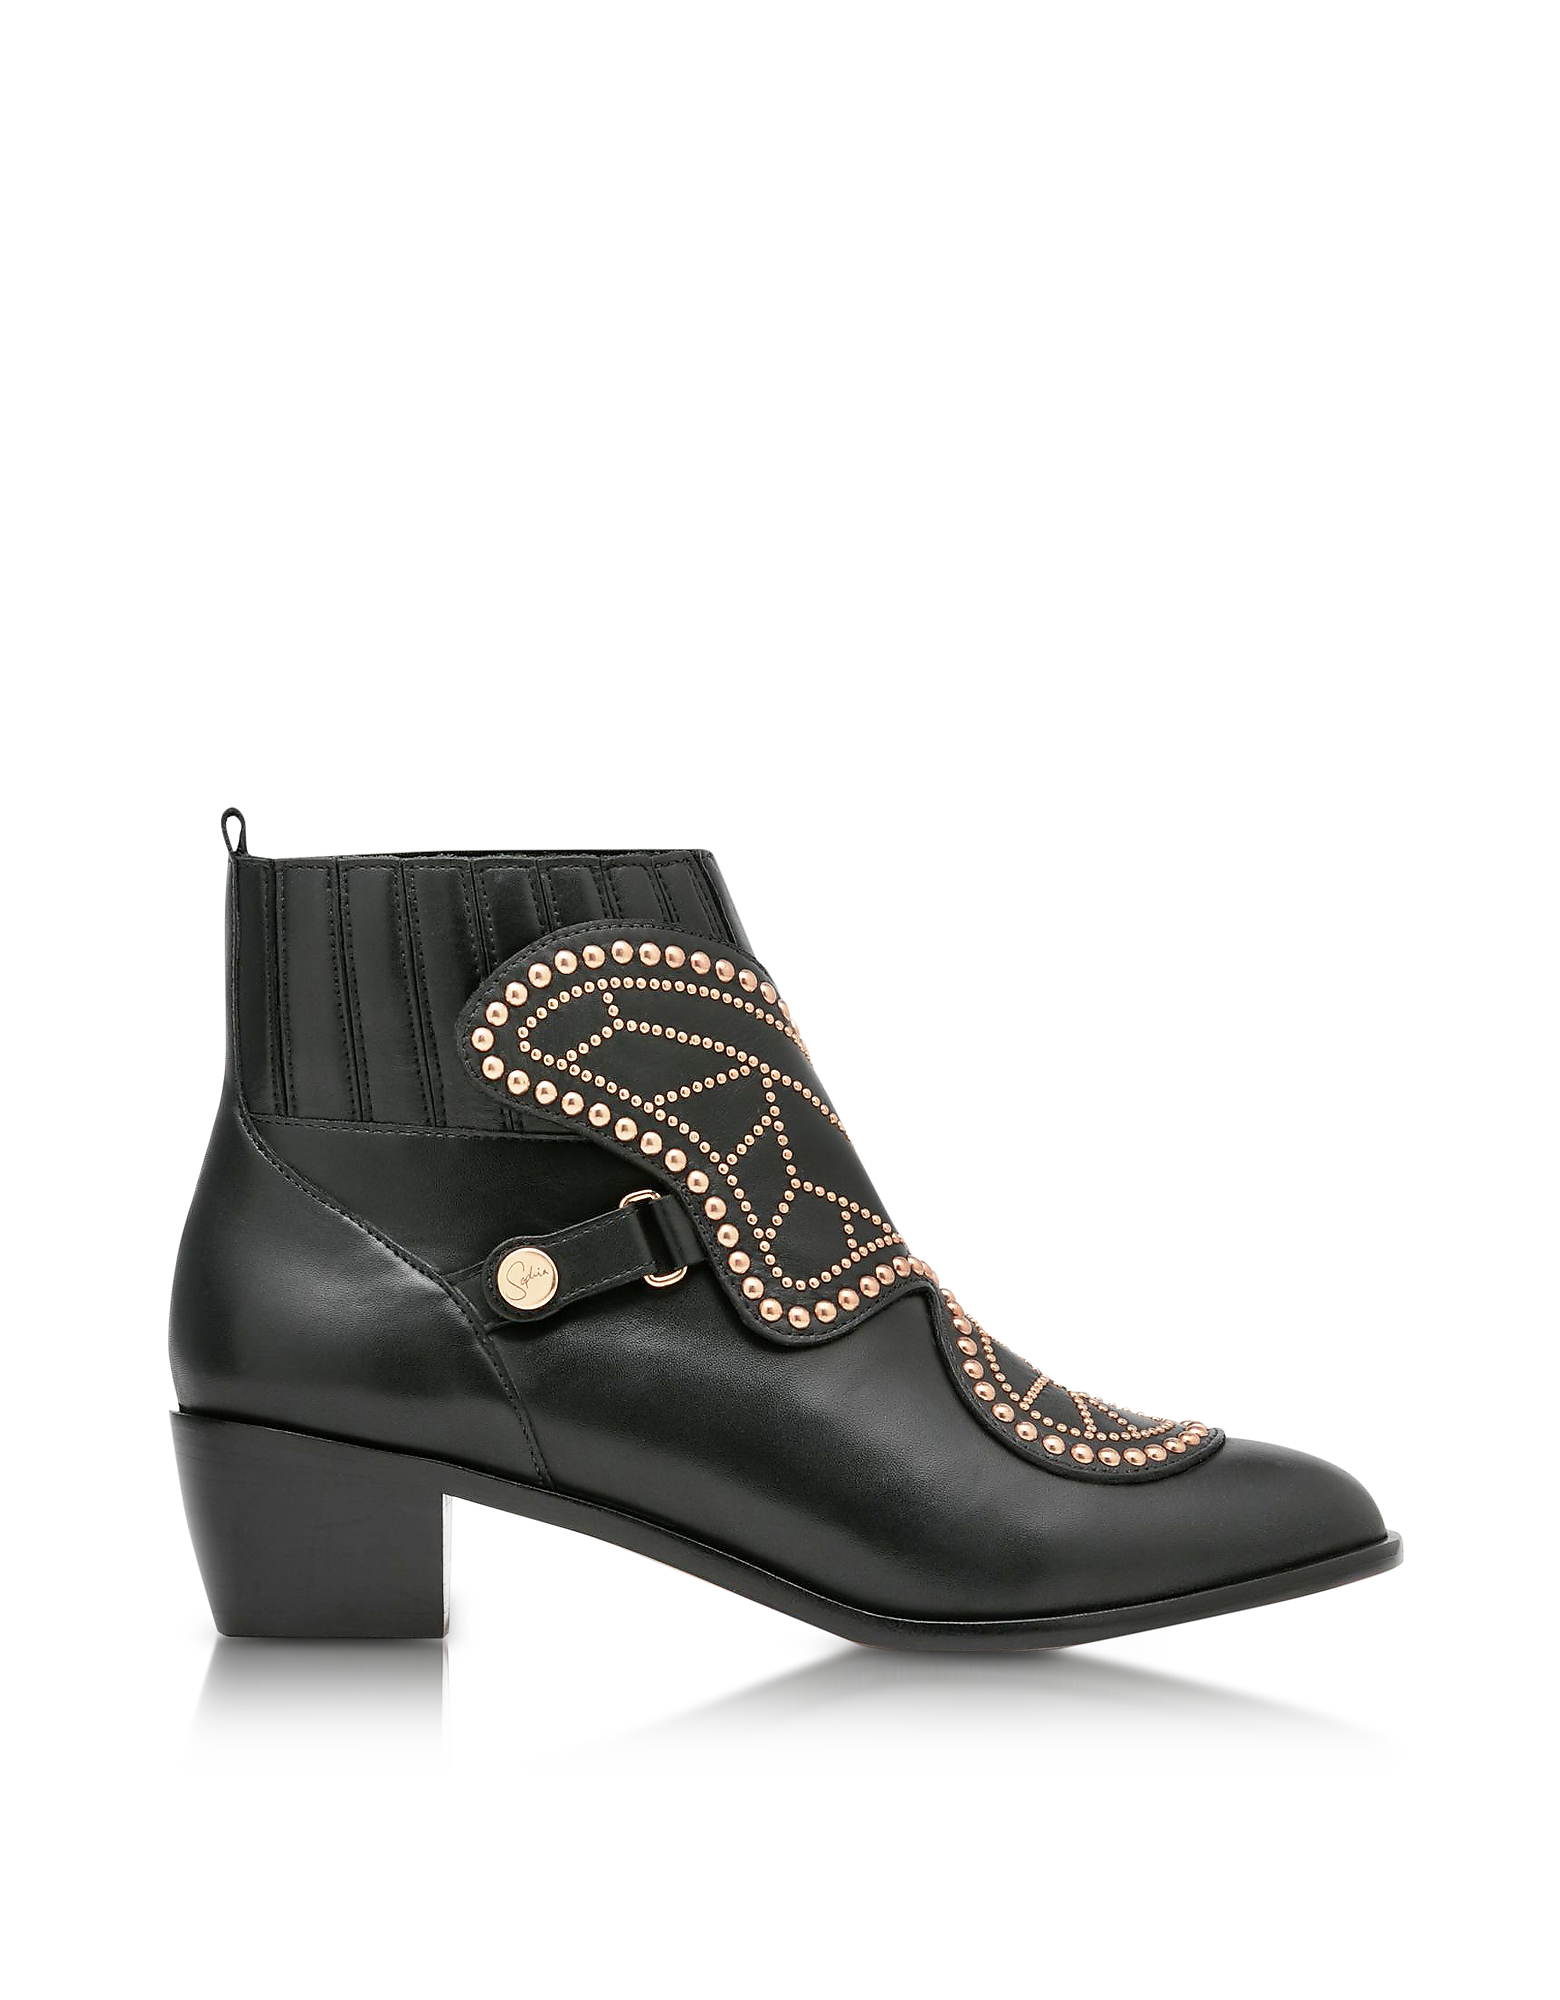 Sophia Webster Black Studded Leather Karina Mid Ankle Boots